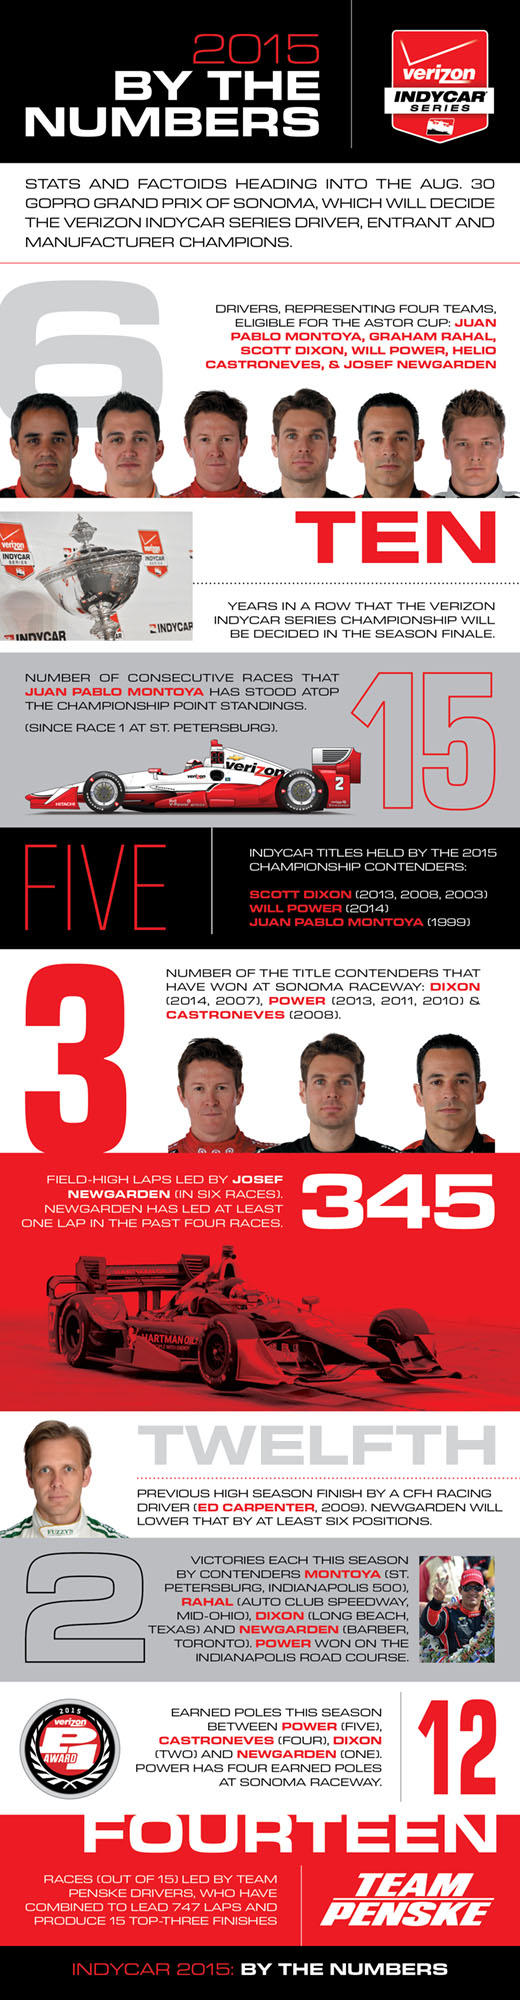 2015 Championship By The Numbers